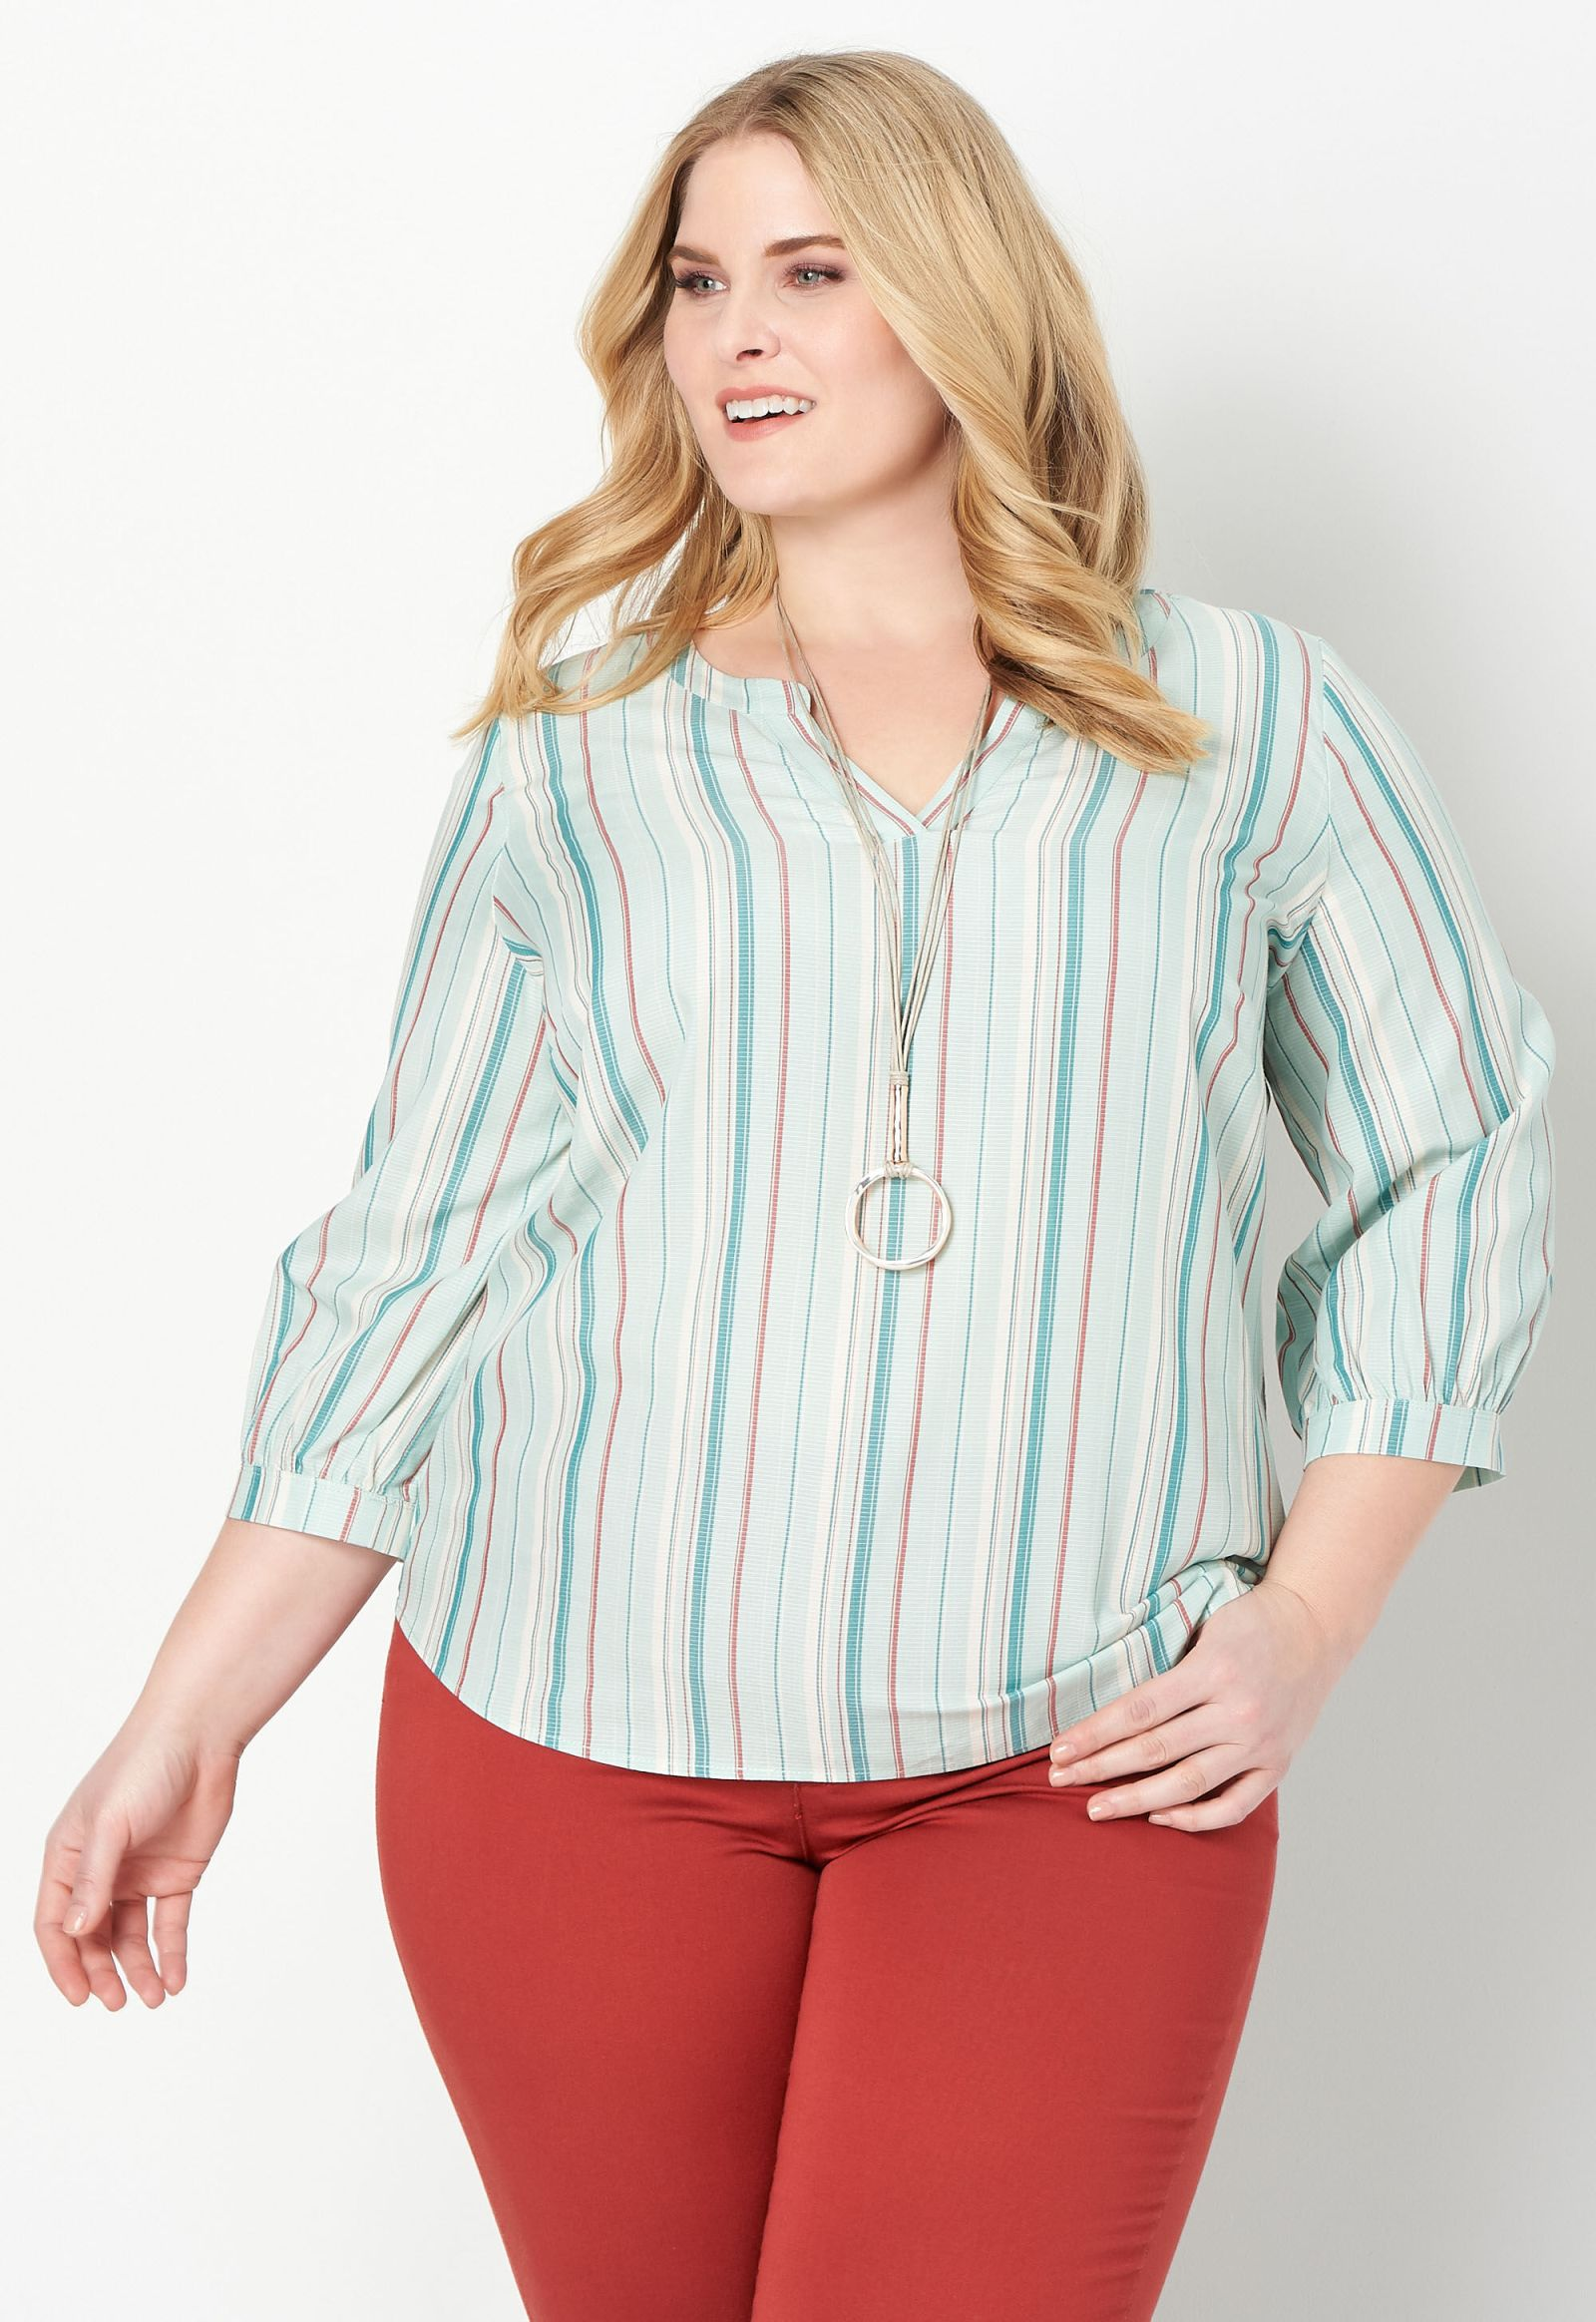 Variegated Stripe Plus Size Blouse 2